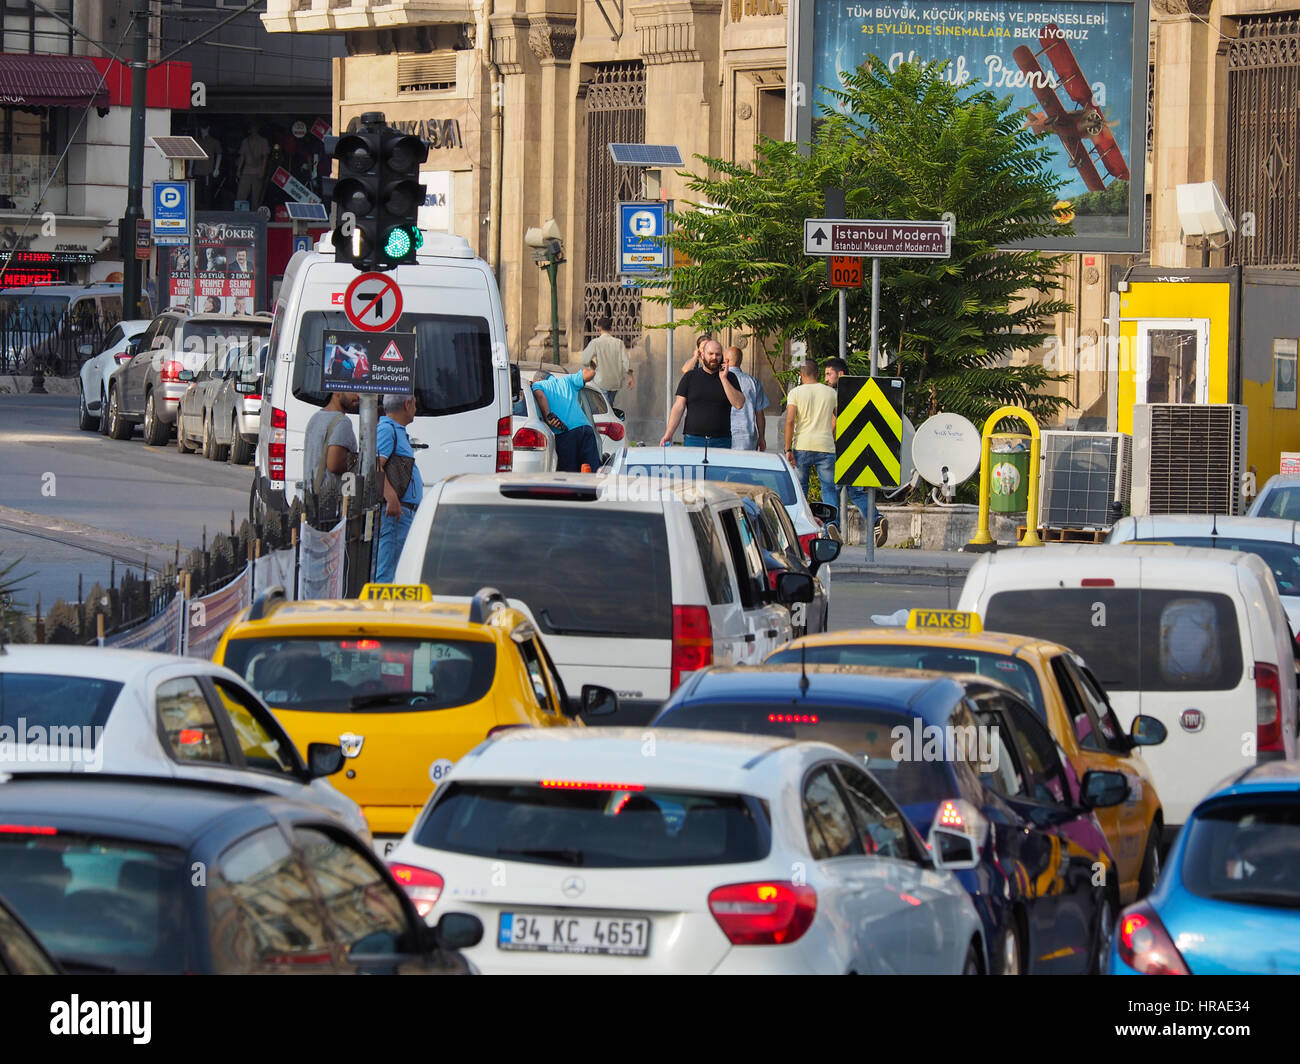 Taxis in traffic,near Istanbul Museum,  Istanbul (western side) Turkey - Stock Image